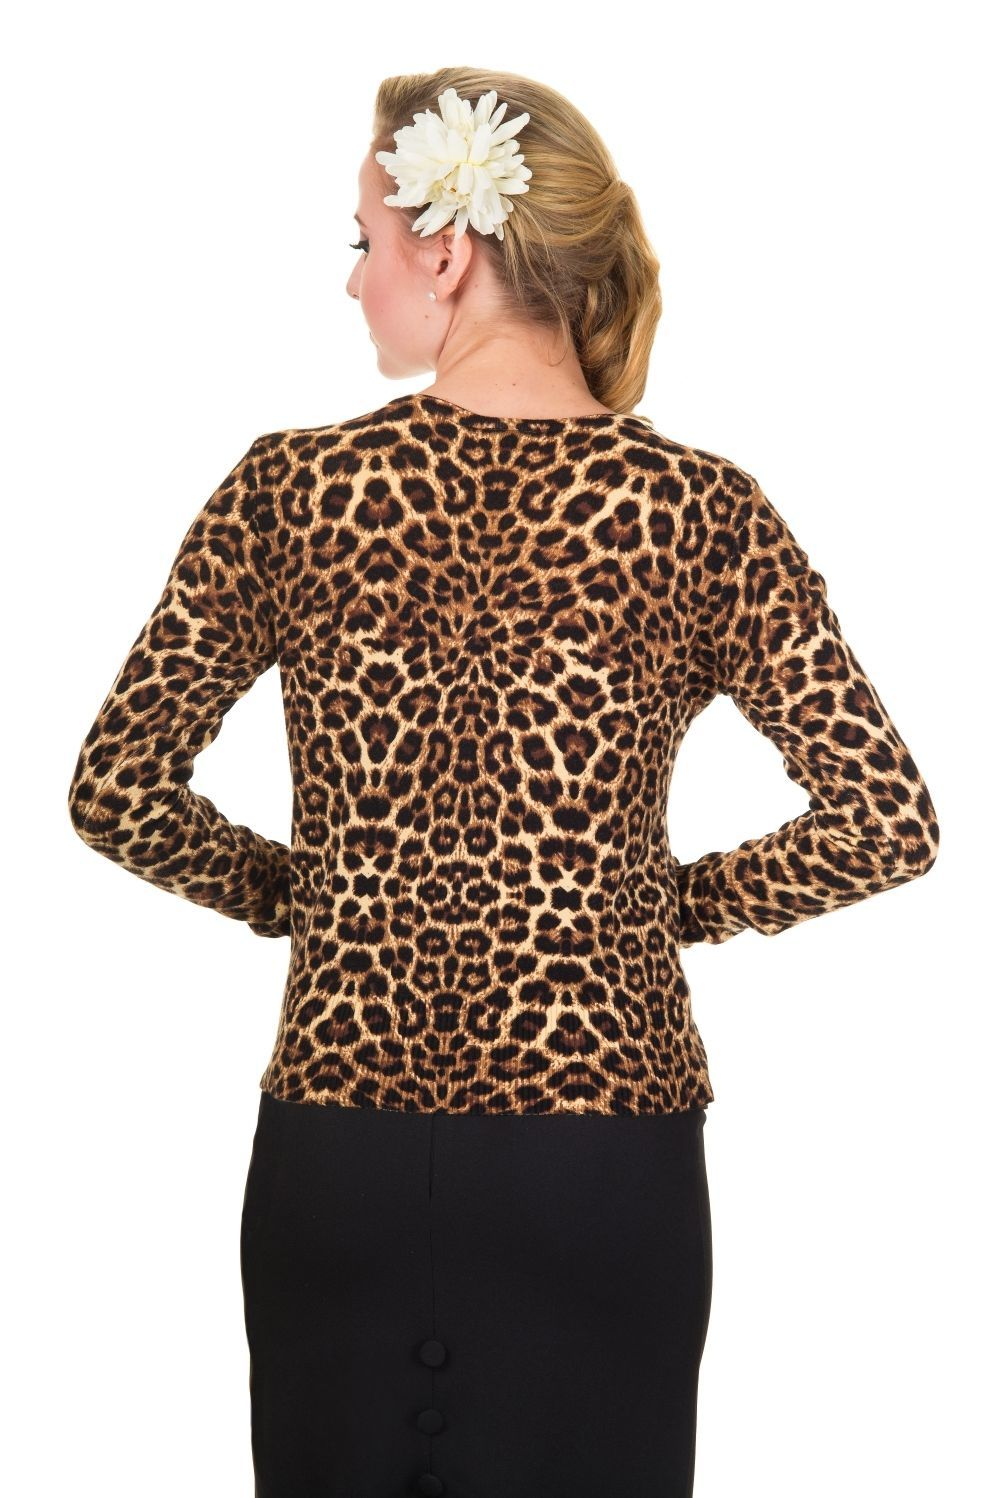 Leo Cardigan by Banned Rockabilly 50s Animal Print Leopard Top 8 ...